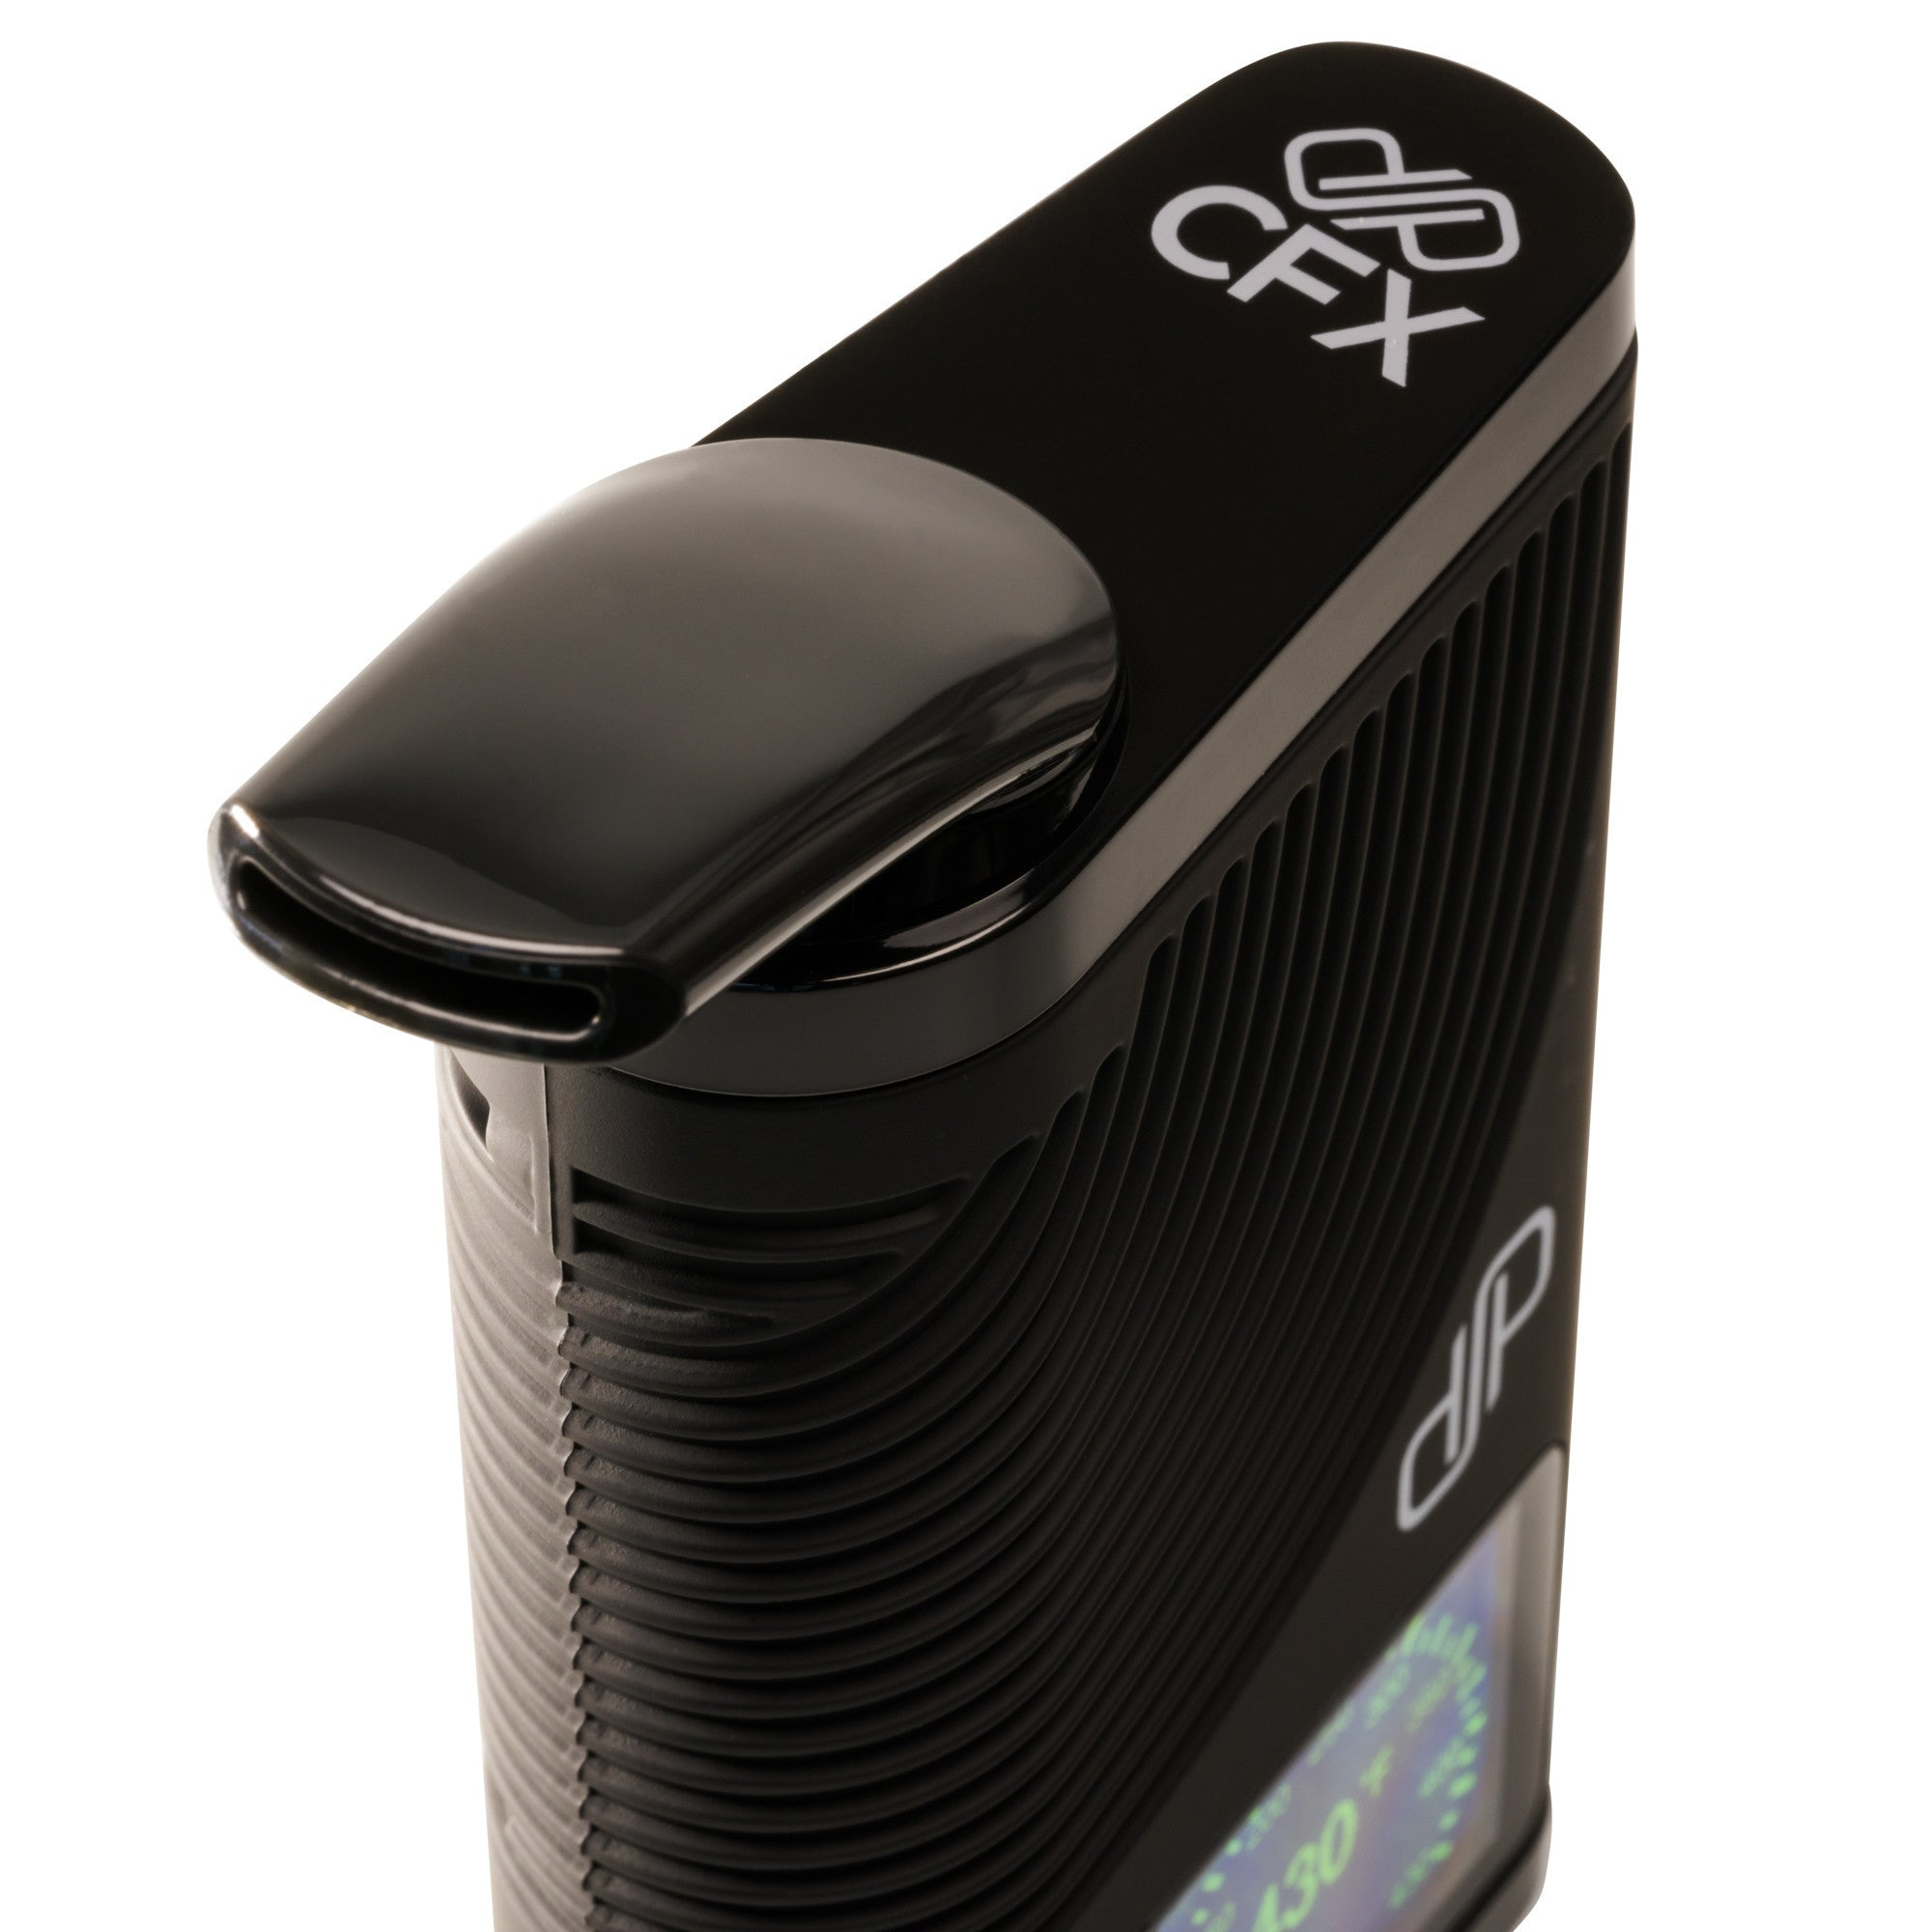 Boundless CFX Vaporizer top view